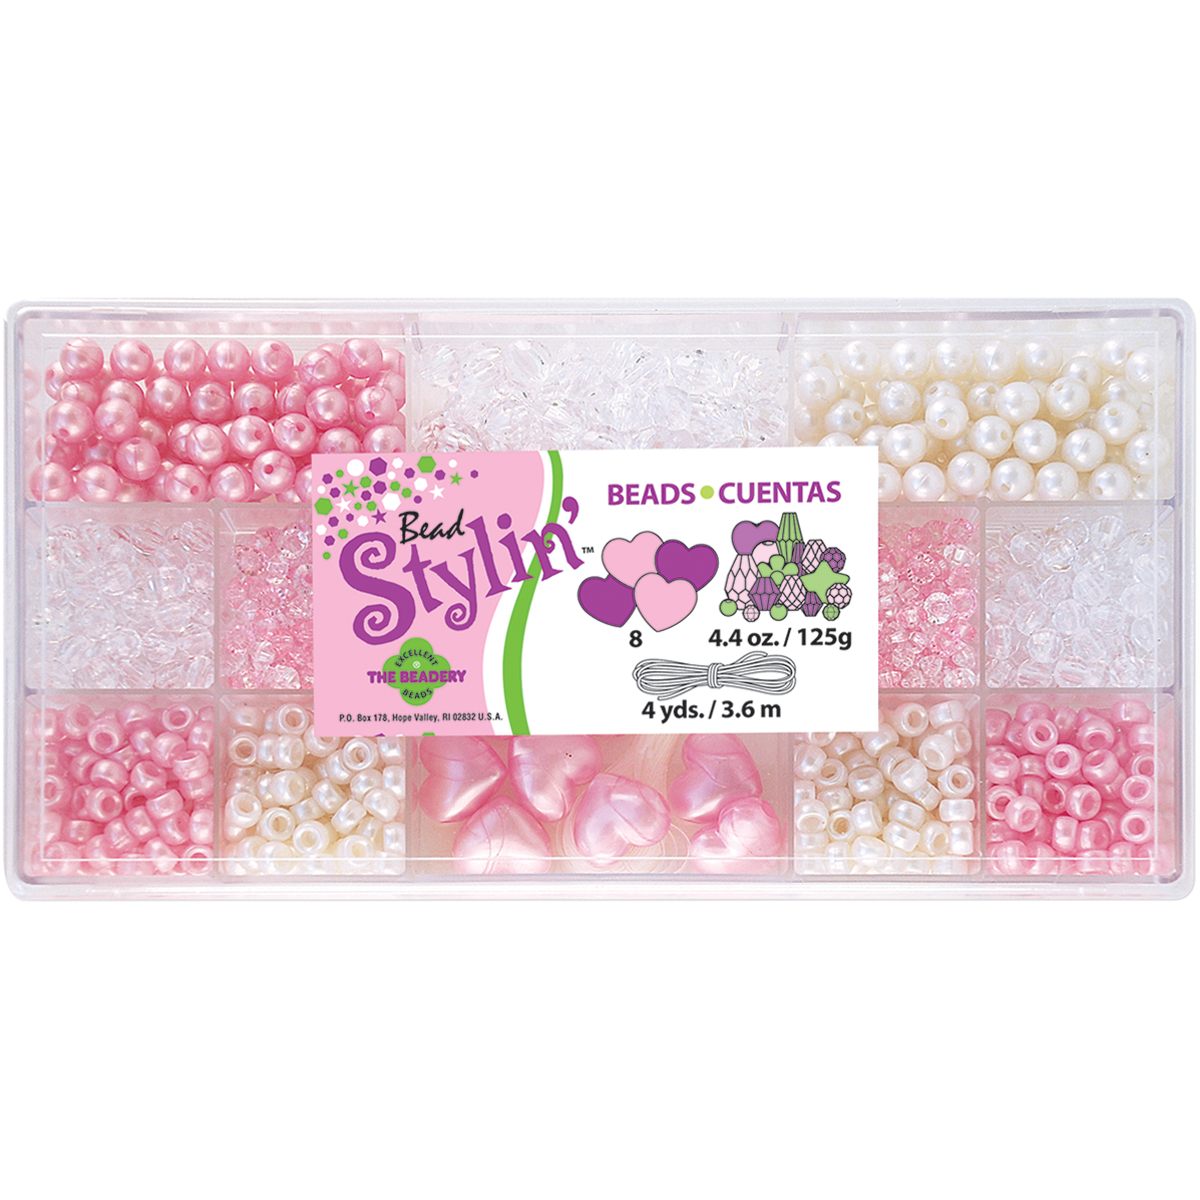 Bead Stylin' Bead Box Kit 4.4oz-Bubble Gum